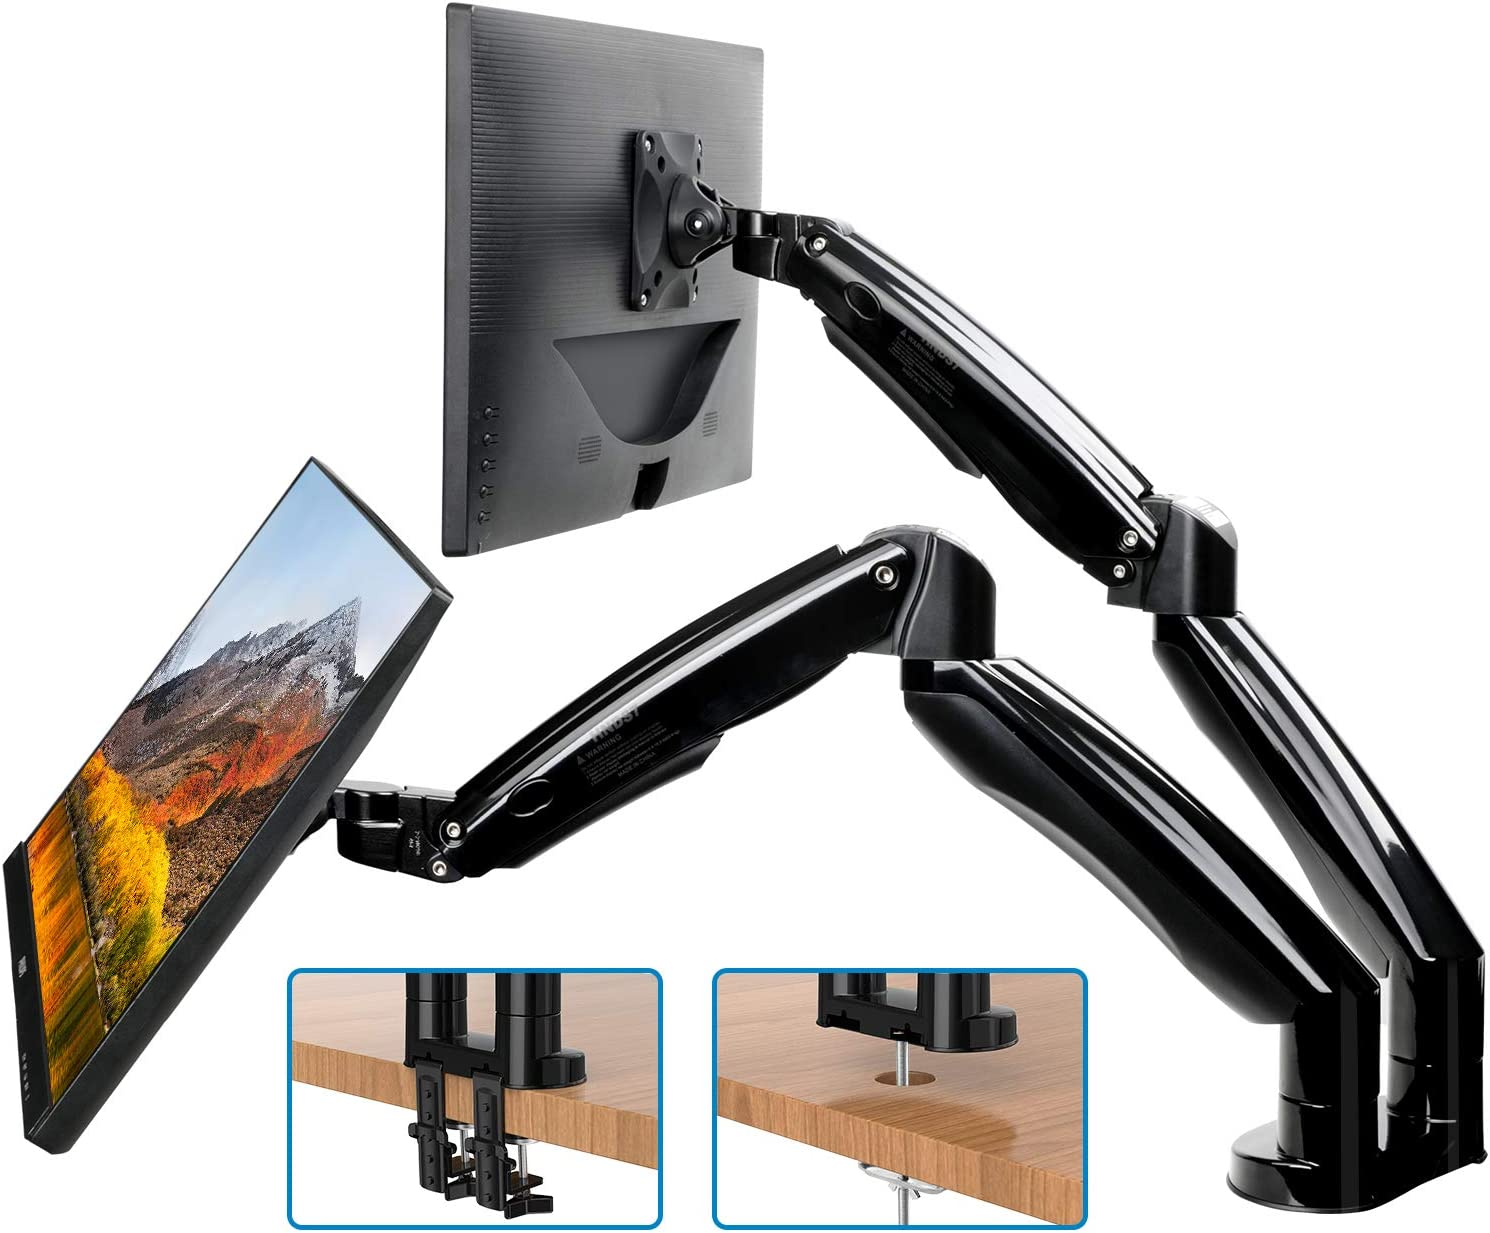 HUANUO Dual Monitor Mount Stand - Long Double Arm Gas Spring Monitor Desk Mount for 2 Screens 22 to 32 Inch Height Adjustable VESA Bracket with Clamp, Grommet Base -Each Arm Hold up to 19.8lbs